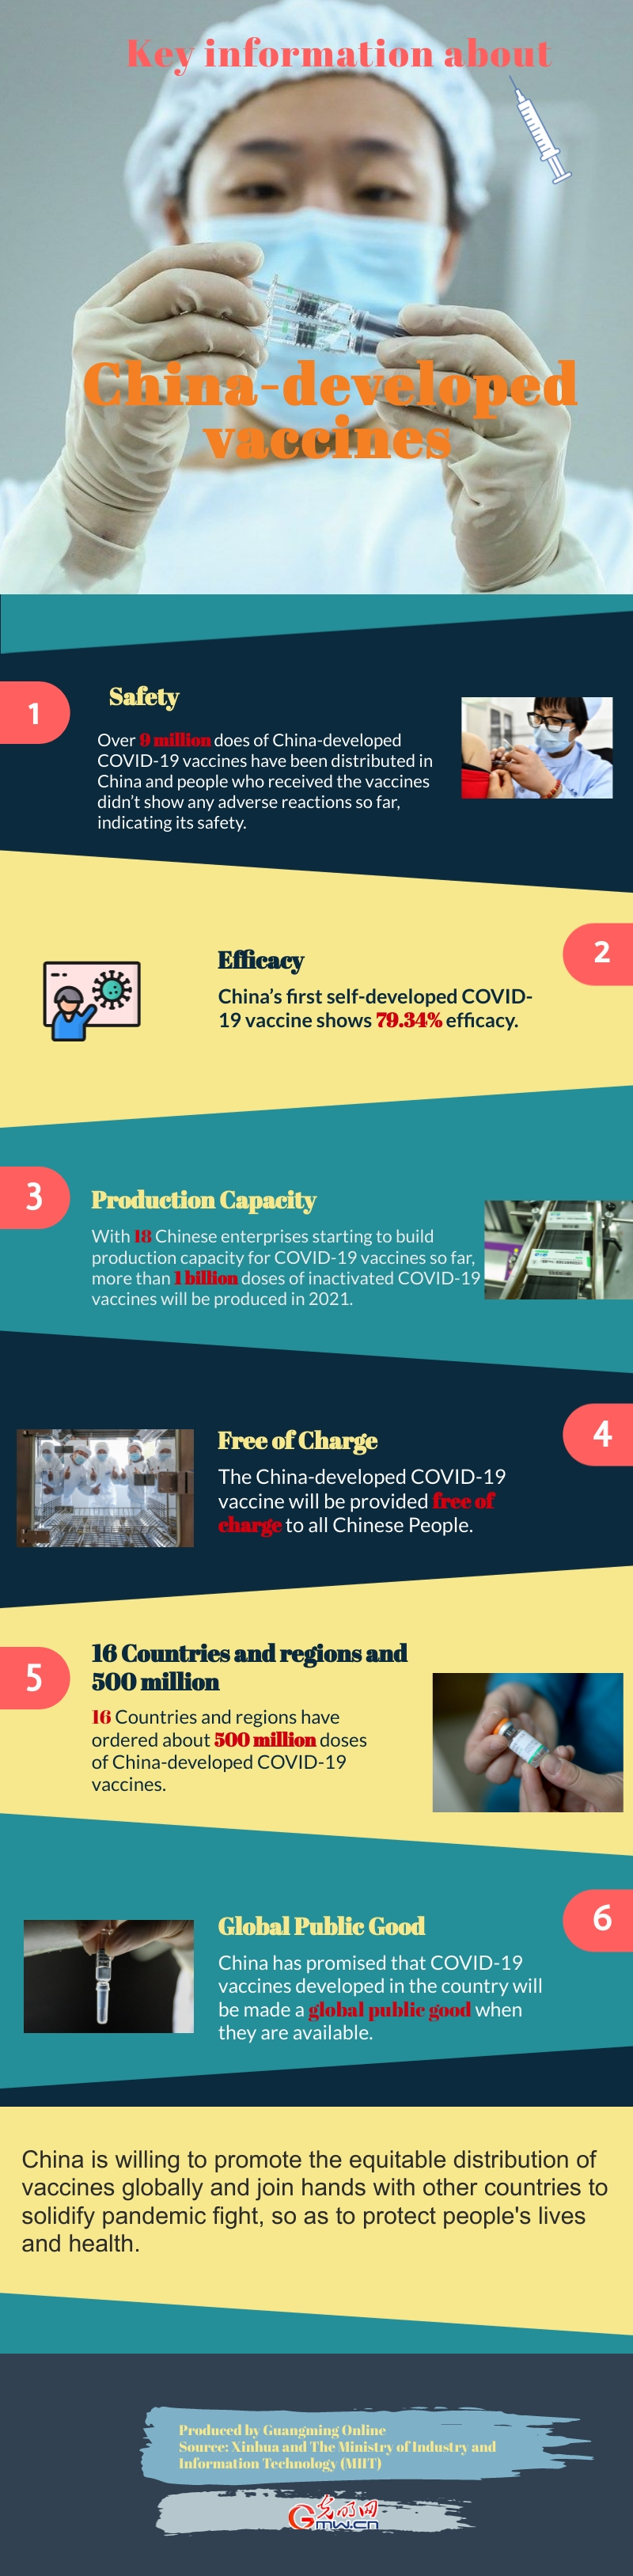 Infographic: Key information about China-developed vaccines